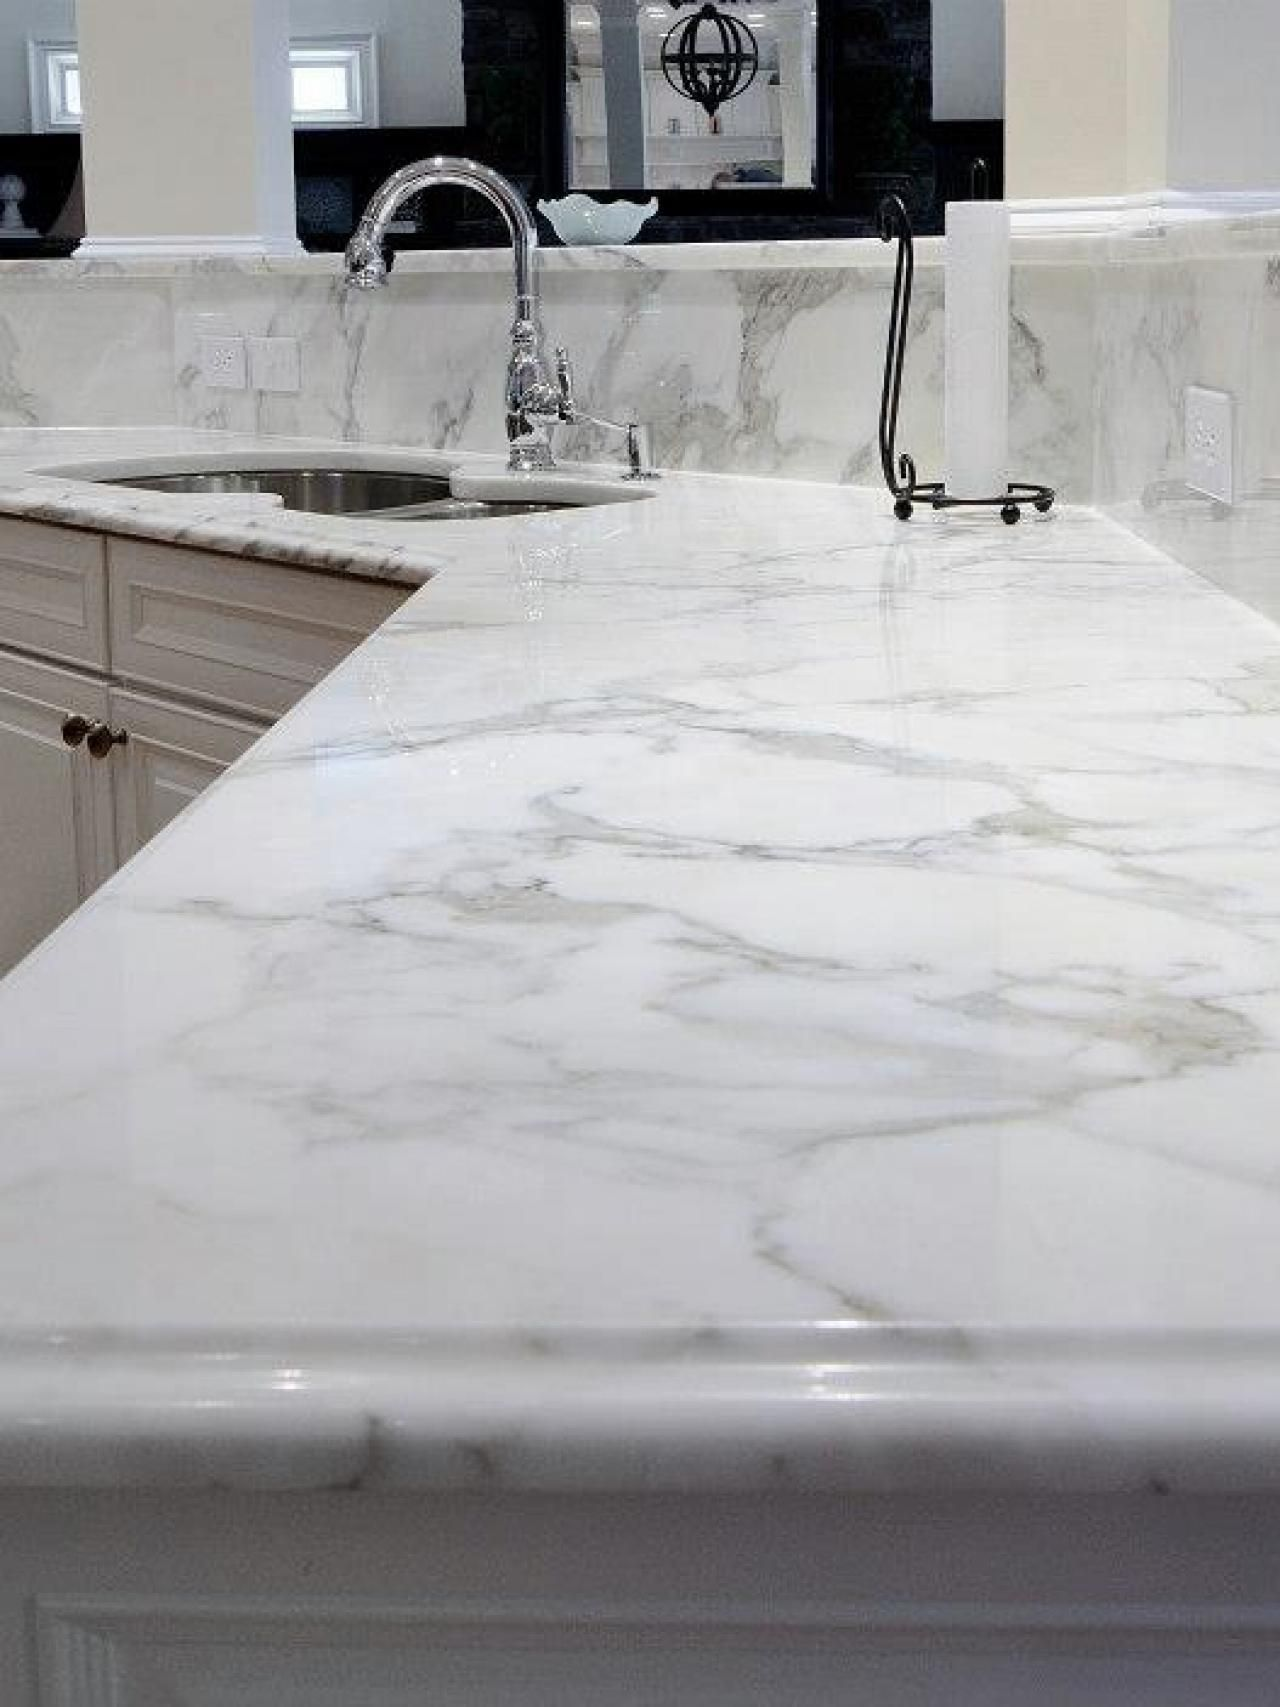 Calacatta Gold Marble Kitchen Countertops And Backsplash Designers  Angelique Baez And Sonny Hires Opted For A Lighter Calcutta Gold Marble  Countertop In ...